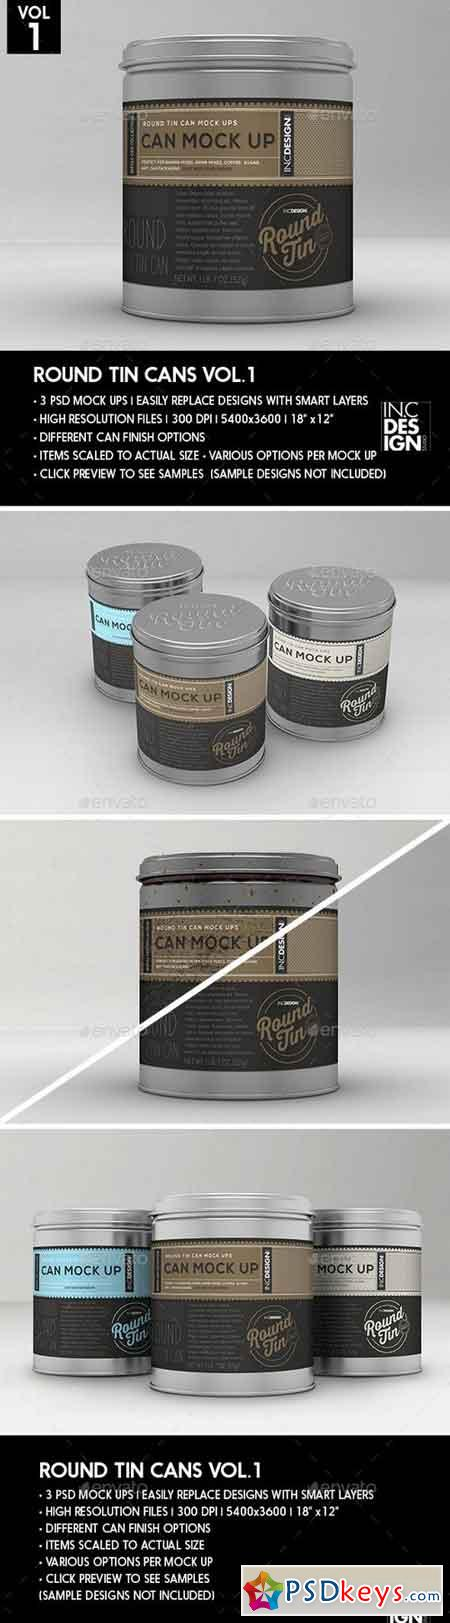 Round Tin Cans Vol.1 Packaging Mock Ups 18173598